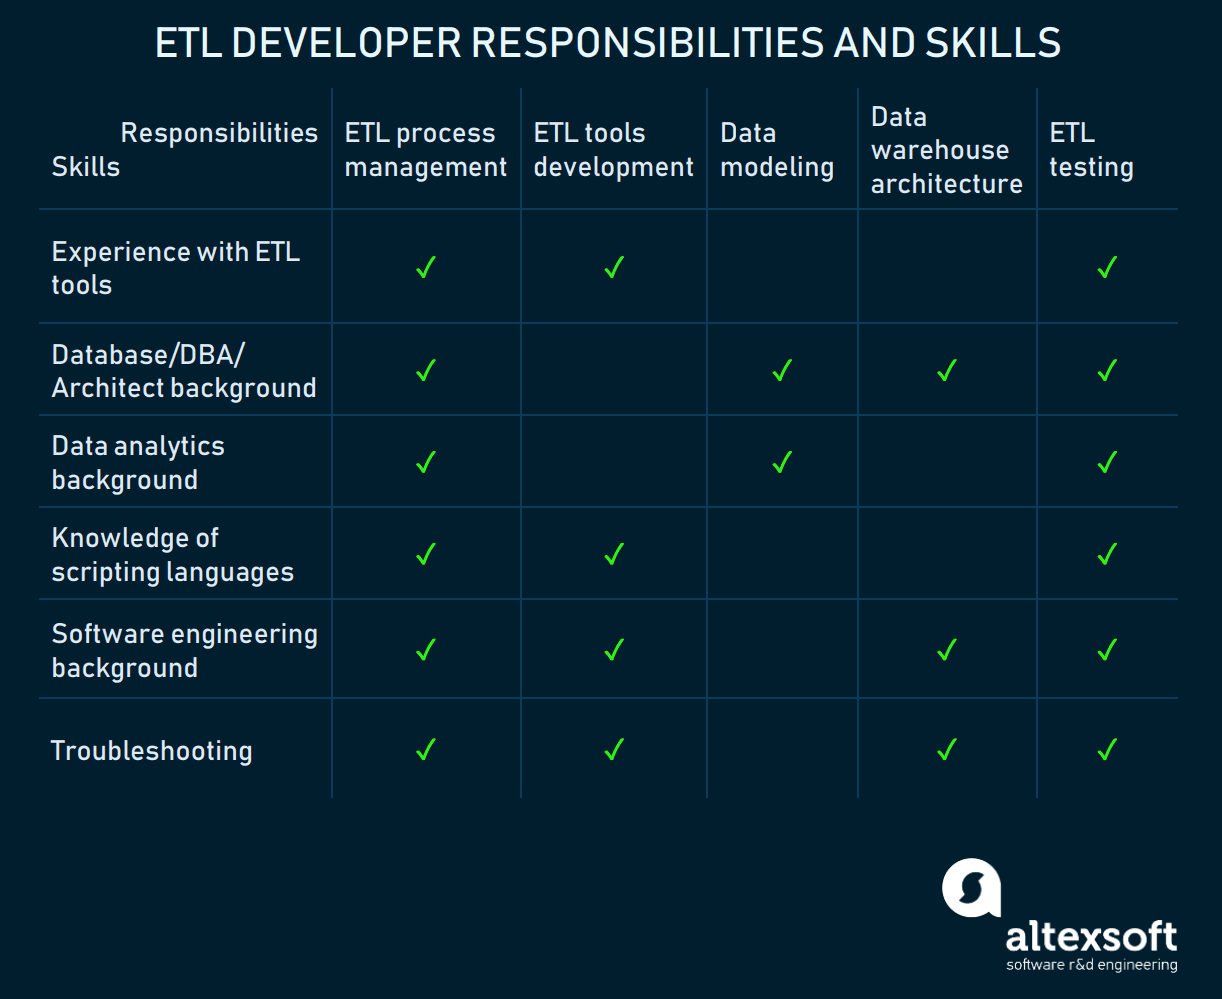 Table of ETL developer's responsibilities and skills